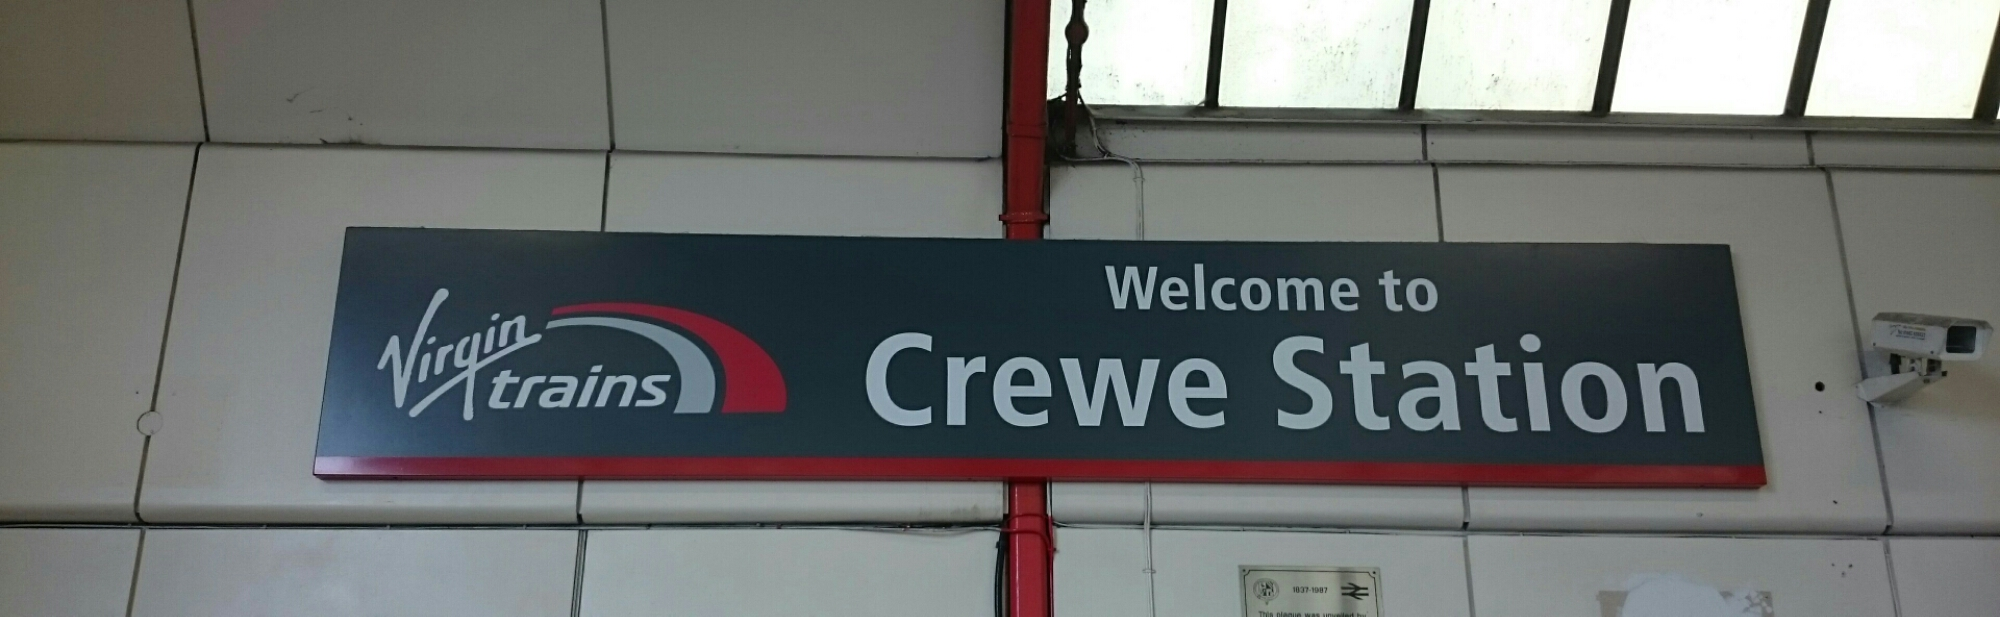 Crewe station, we've had times together you know...